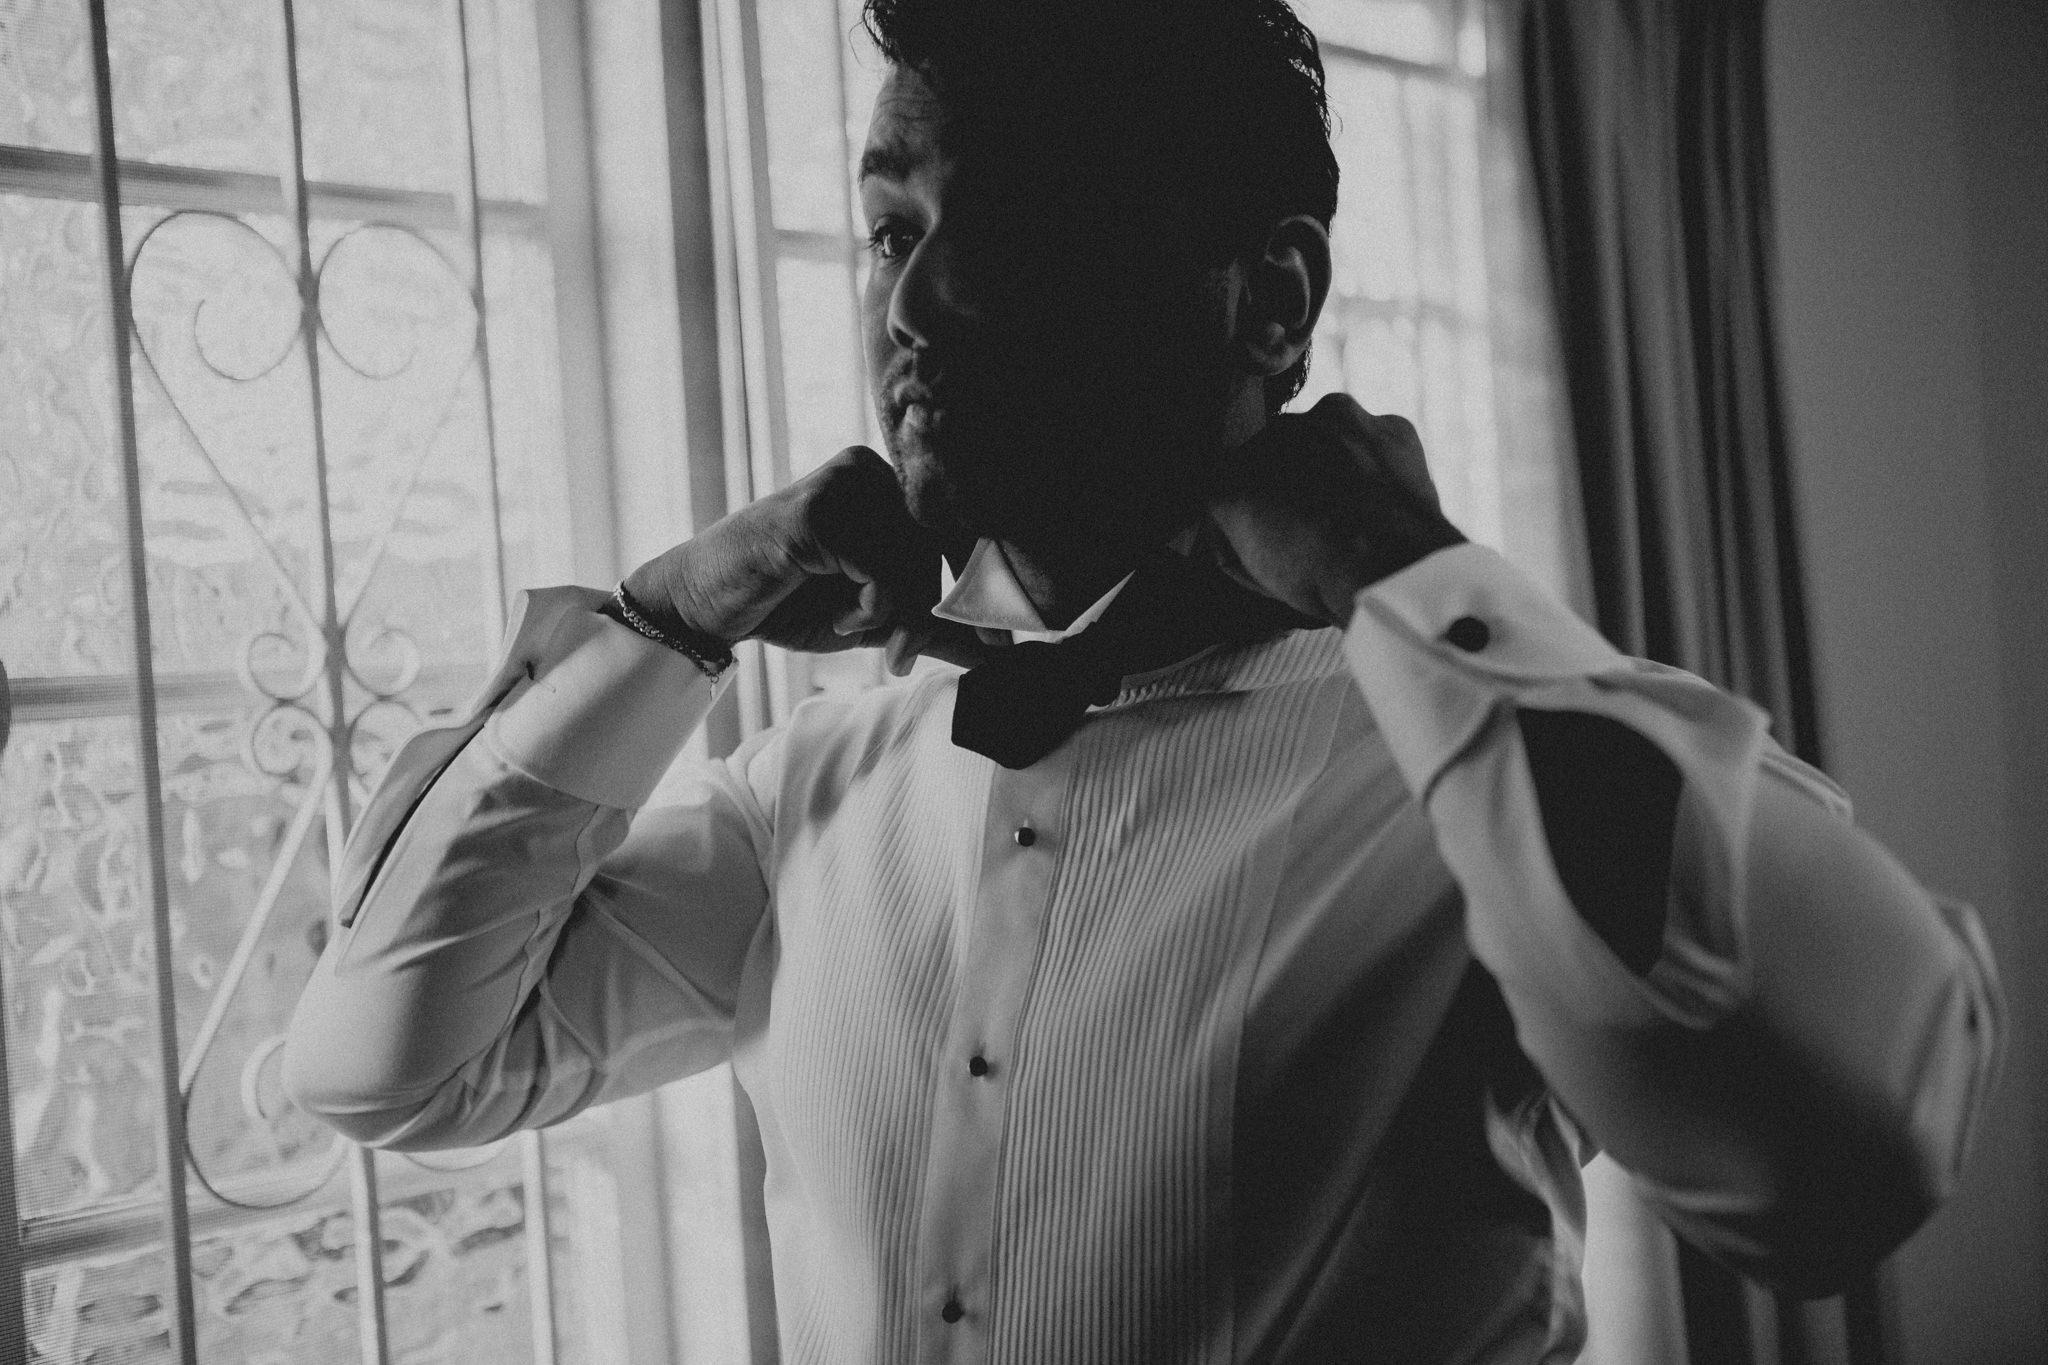 A man stands next to a window as he puts on a bow-tie